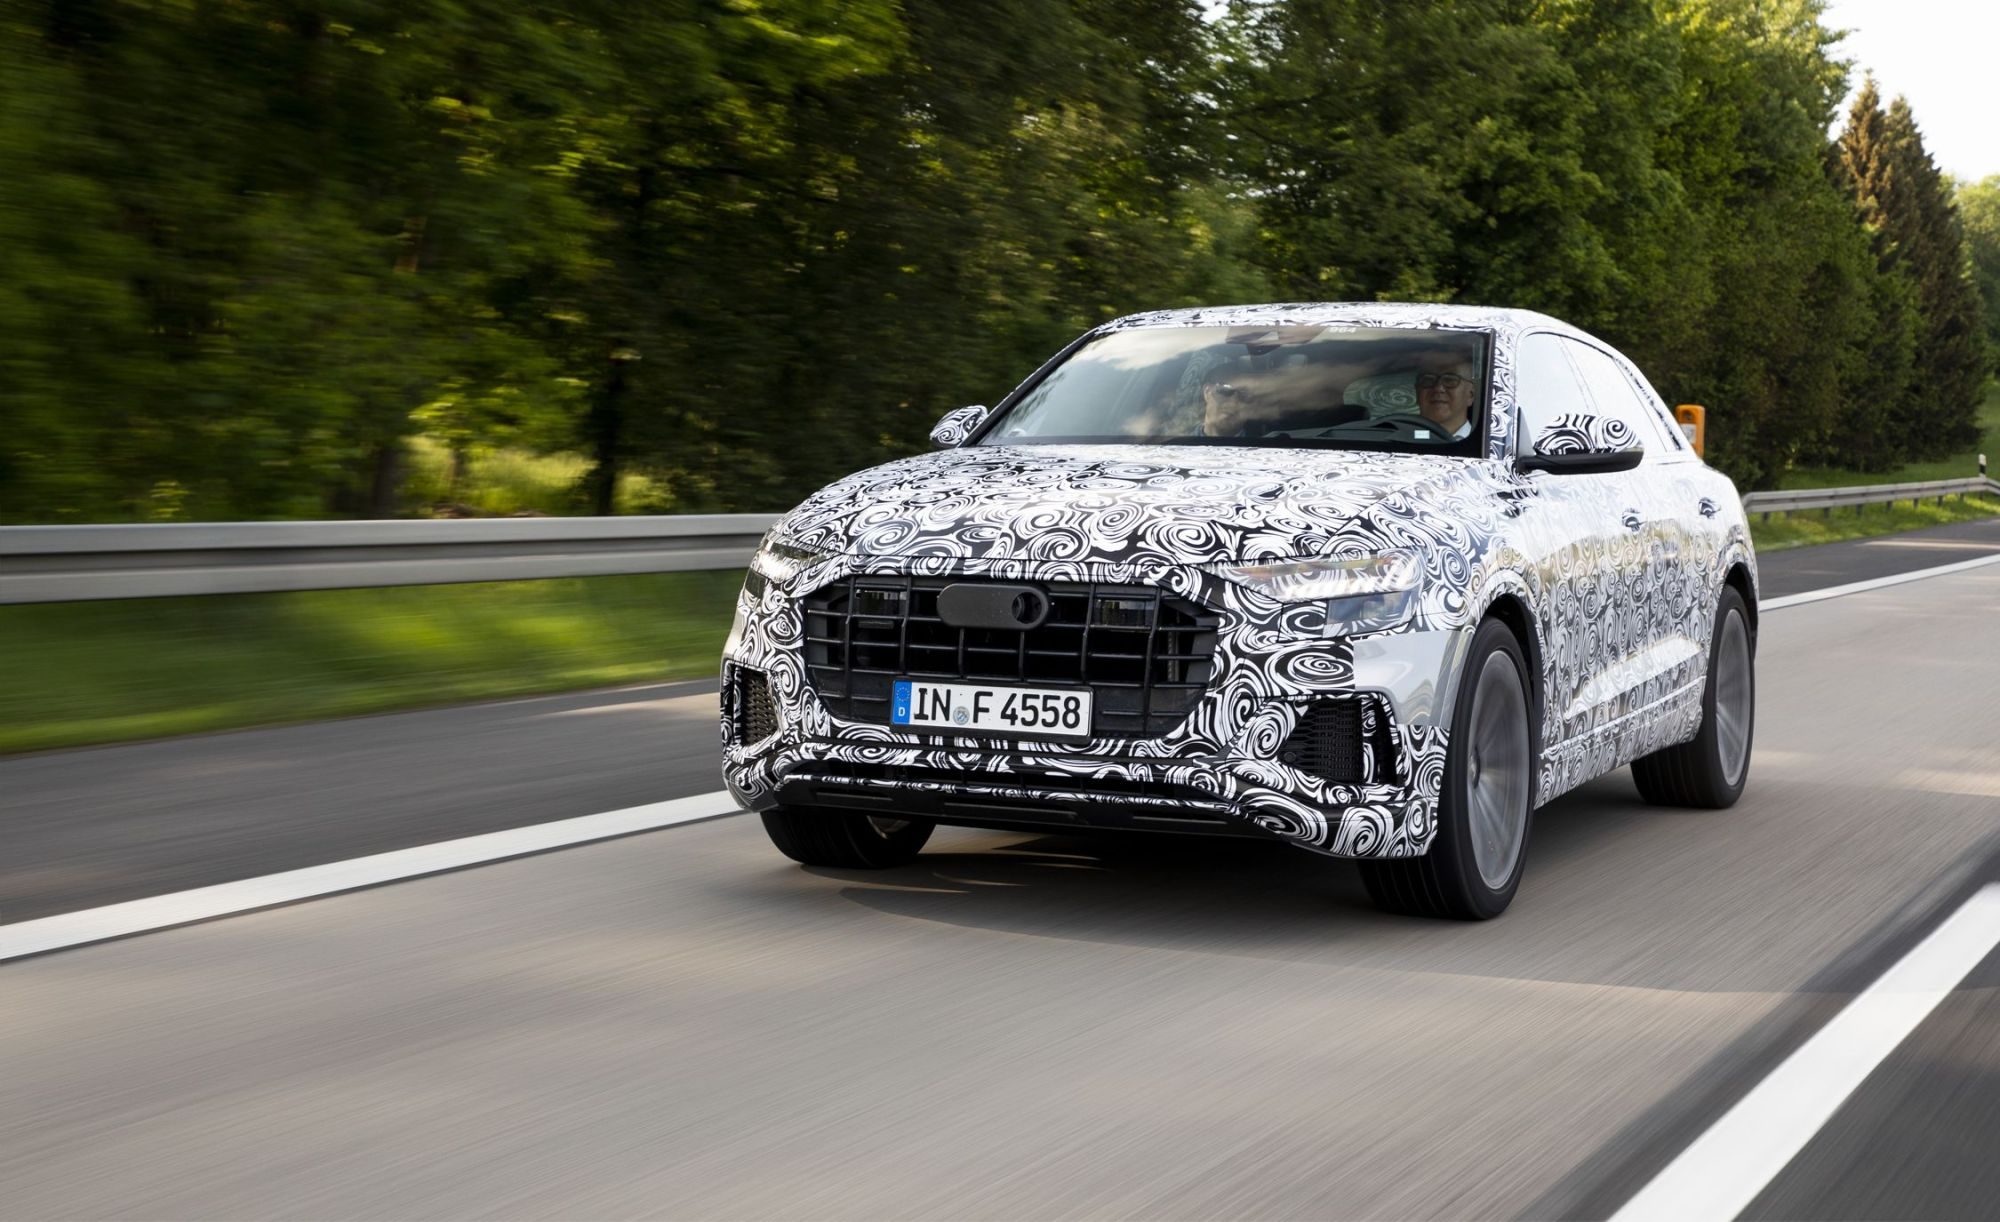 hight resolution of 2019 audi q8 going for a spin in audi s new flagship suv